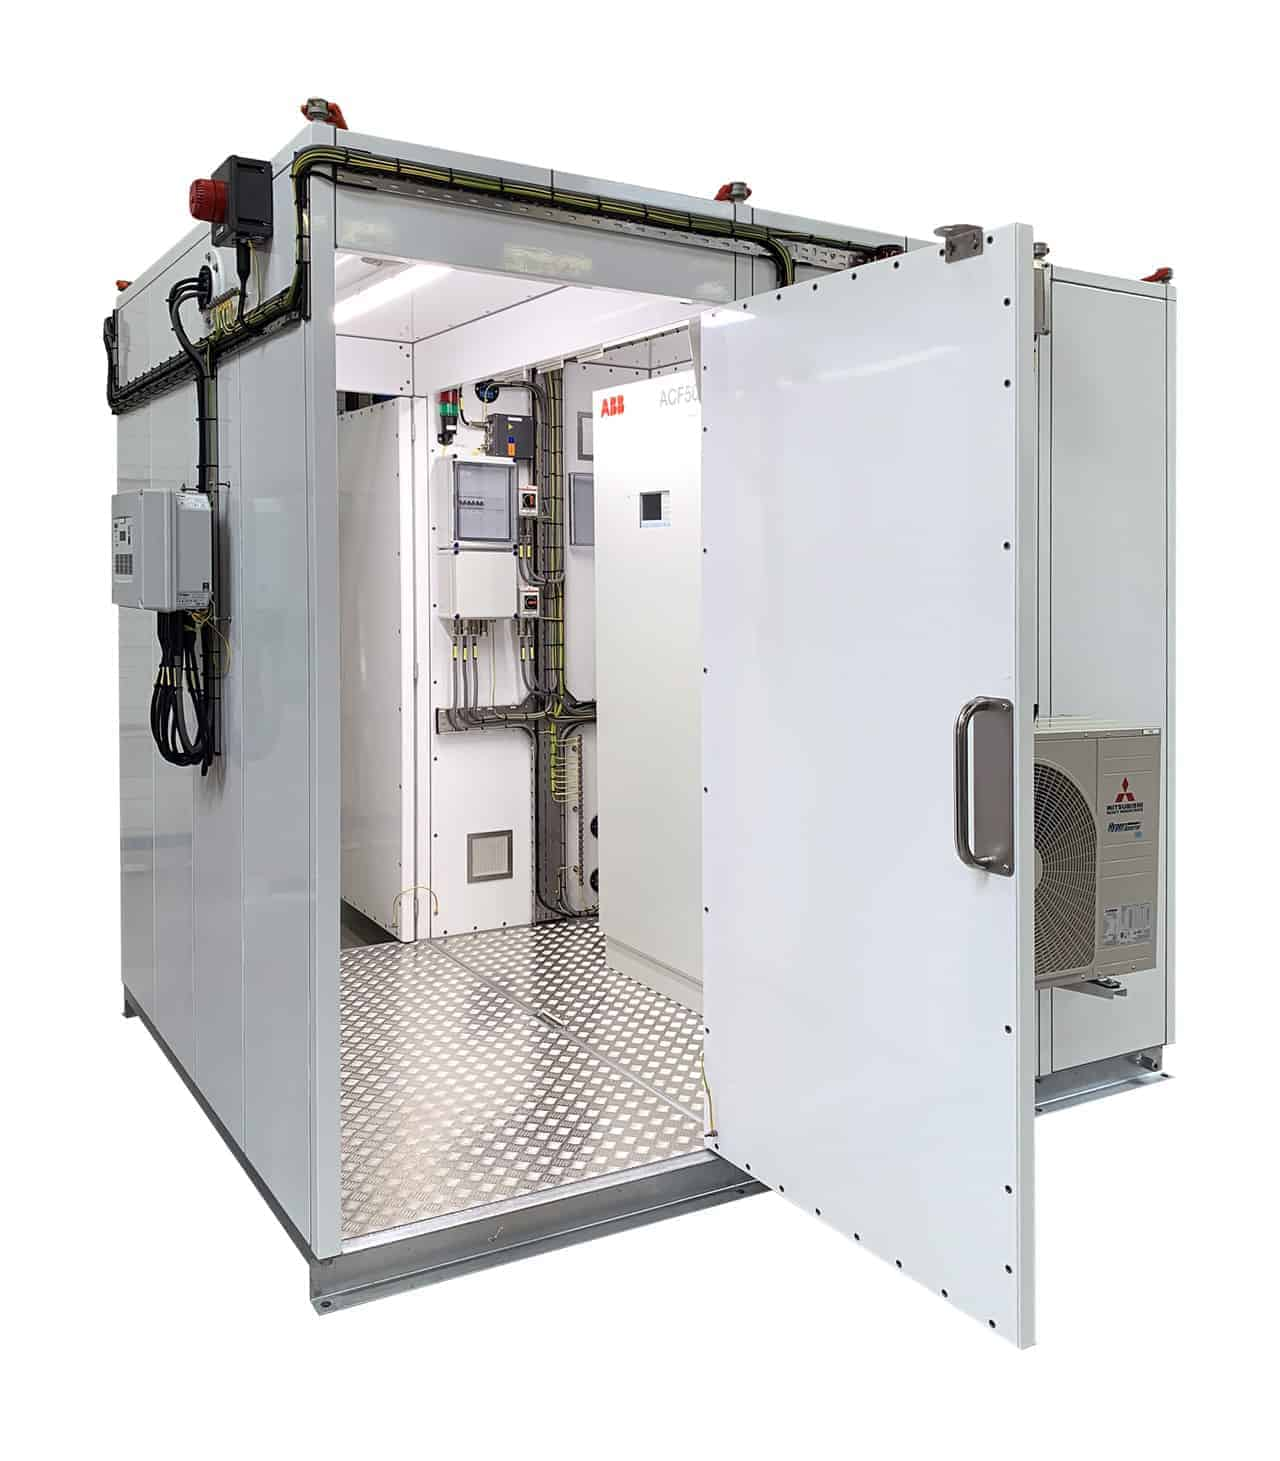 CEMS – Continuous Emission Monitoring System – ABB ACF5000